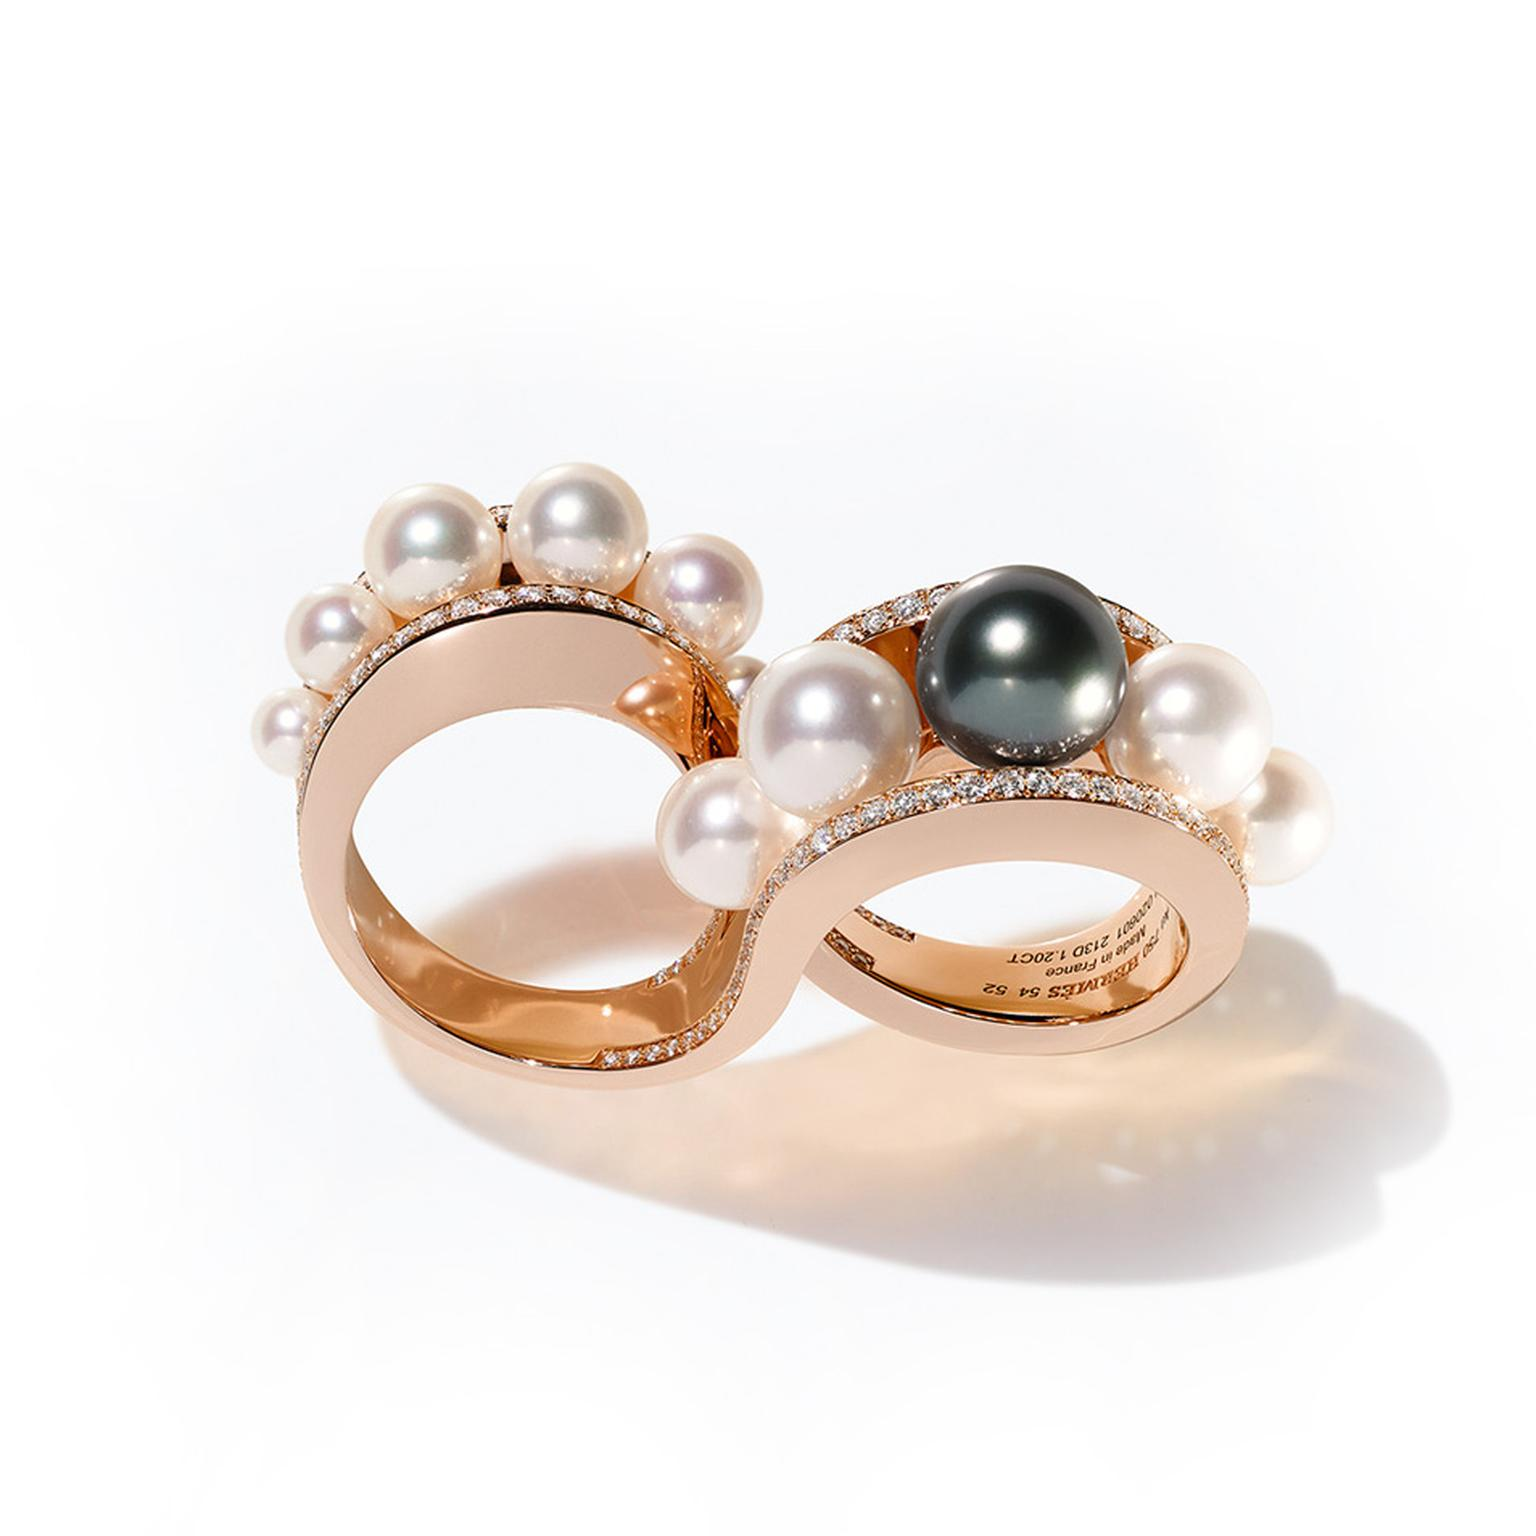 Hermès Ombres et Lumière rose gold and pearl ring from the HB-IV Continuum collection